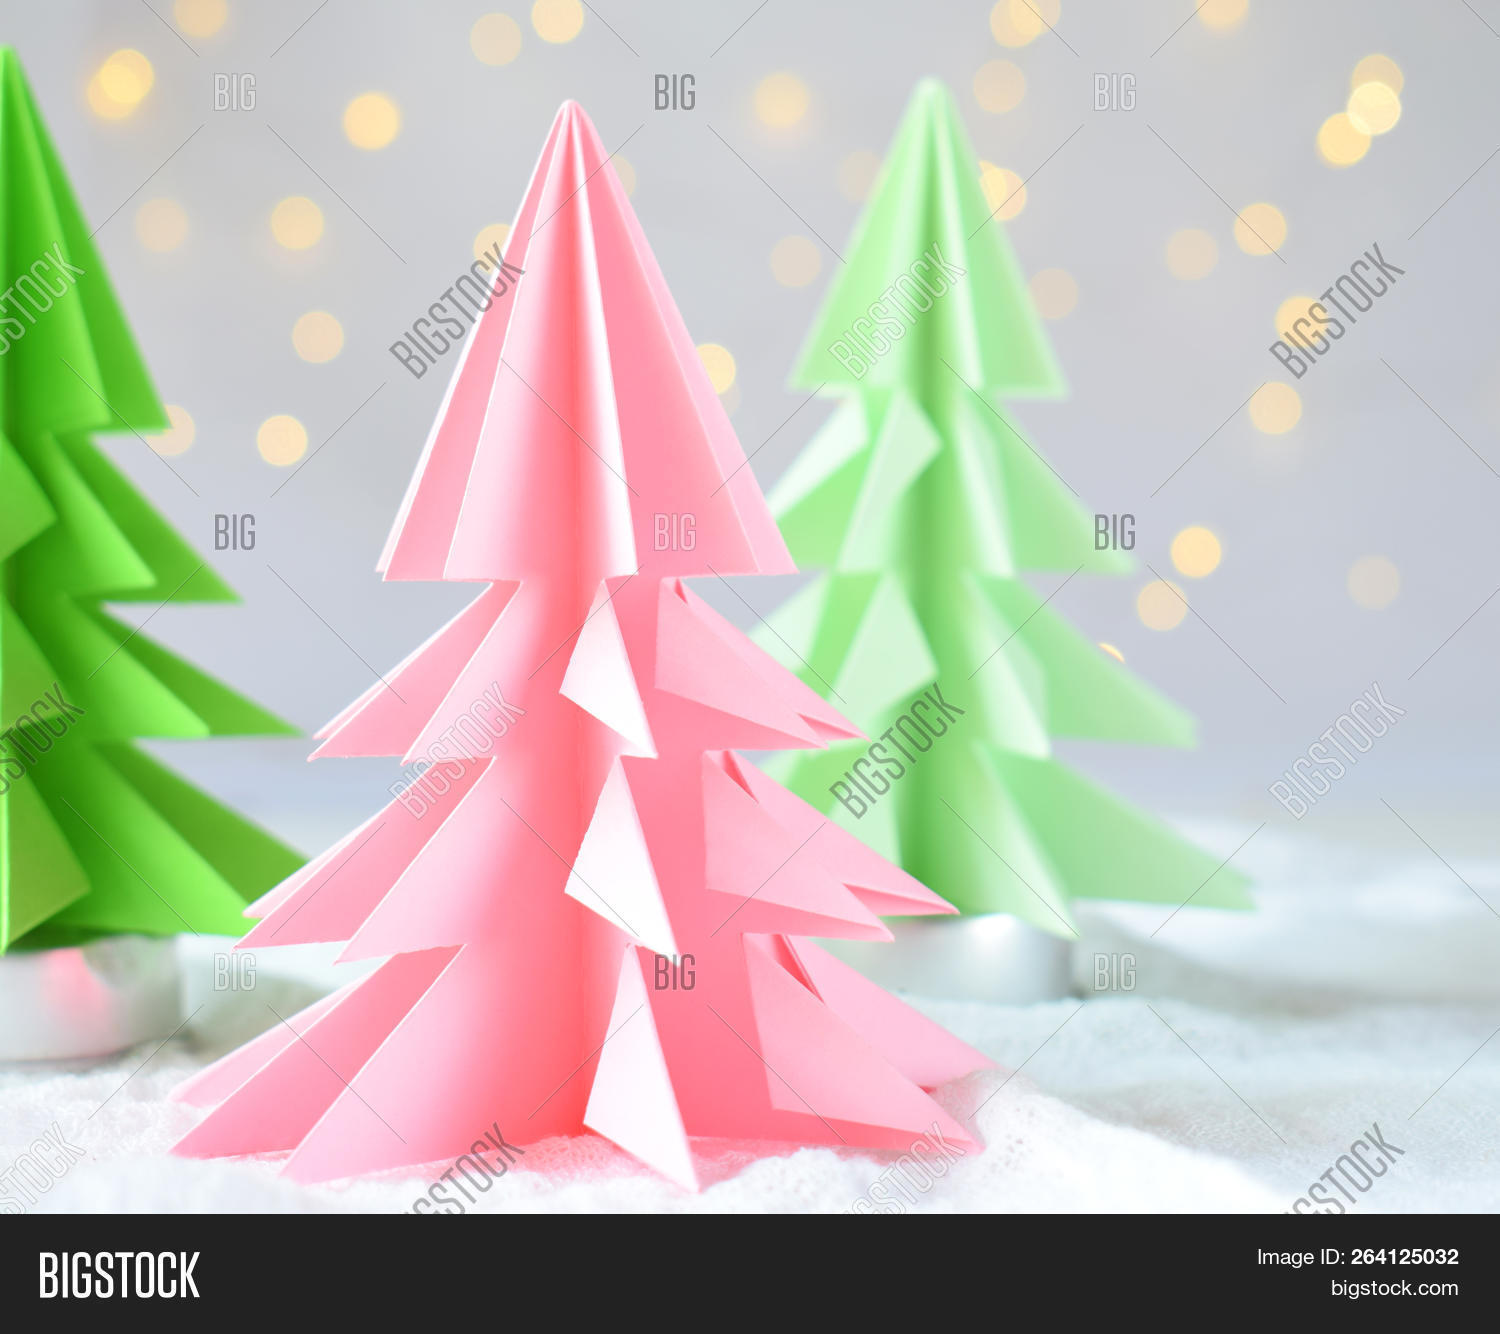 Easy Origami Christmas Tree : 9 Steps (with Pictures) - Instructables | 1334x1500